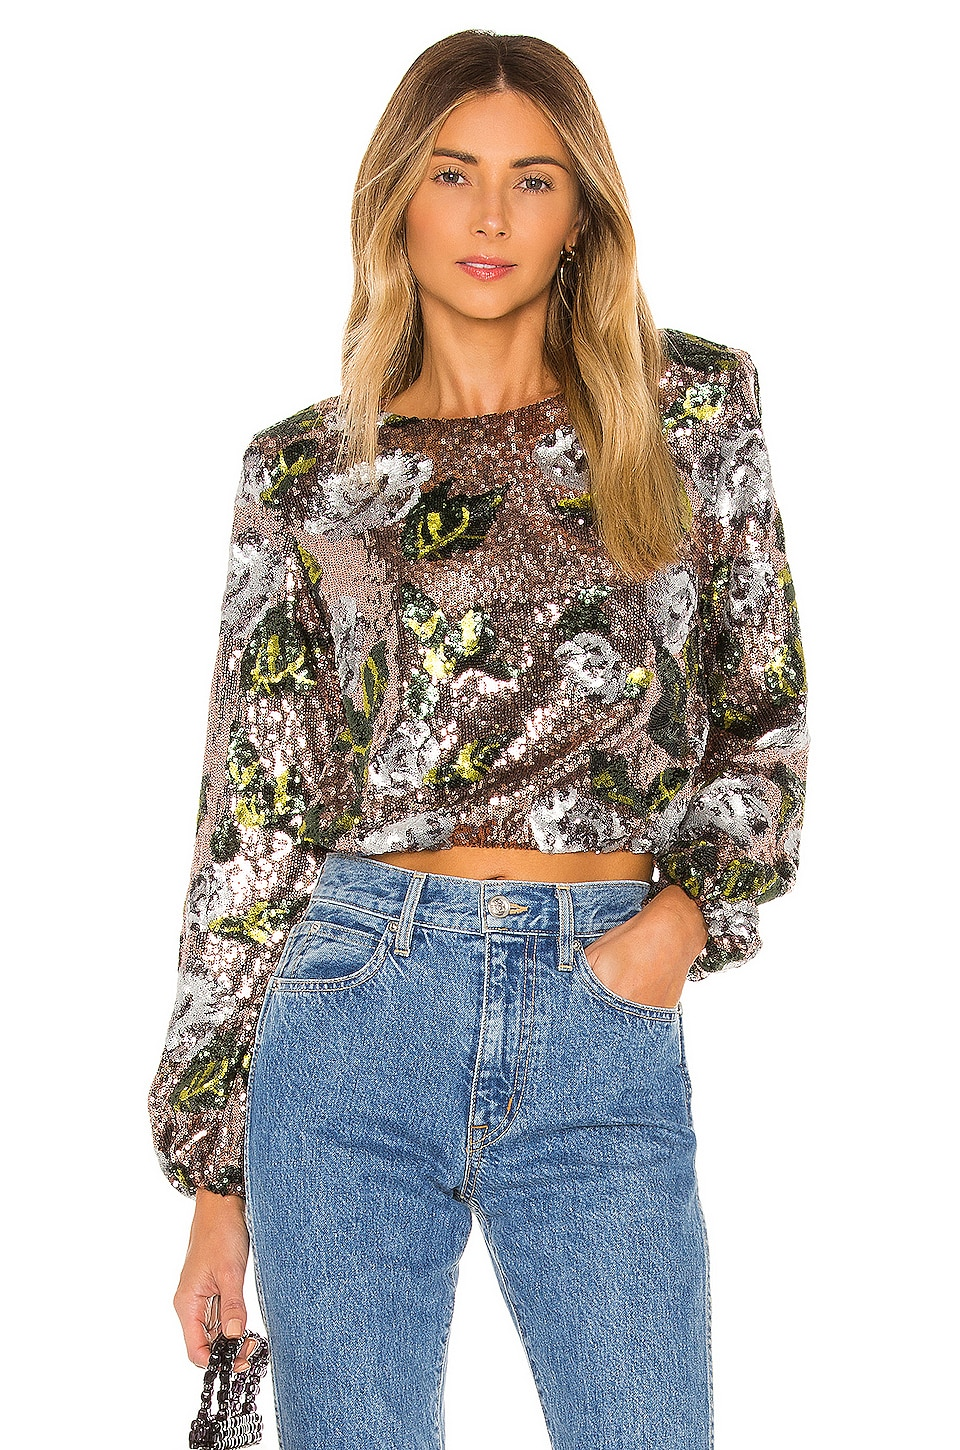 House of Harlow 1960 x REVOLVE Lia Top in Rose Gold Floral